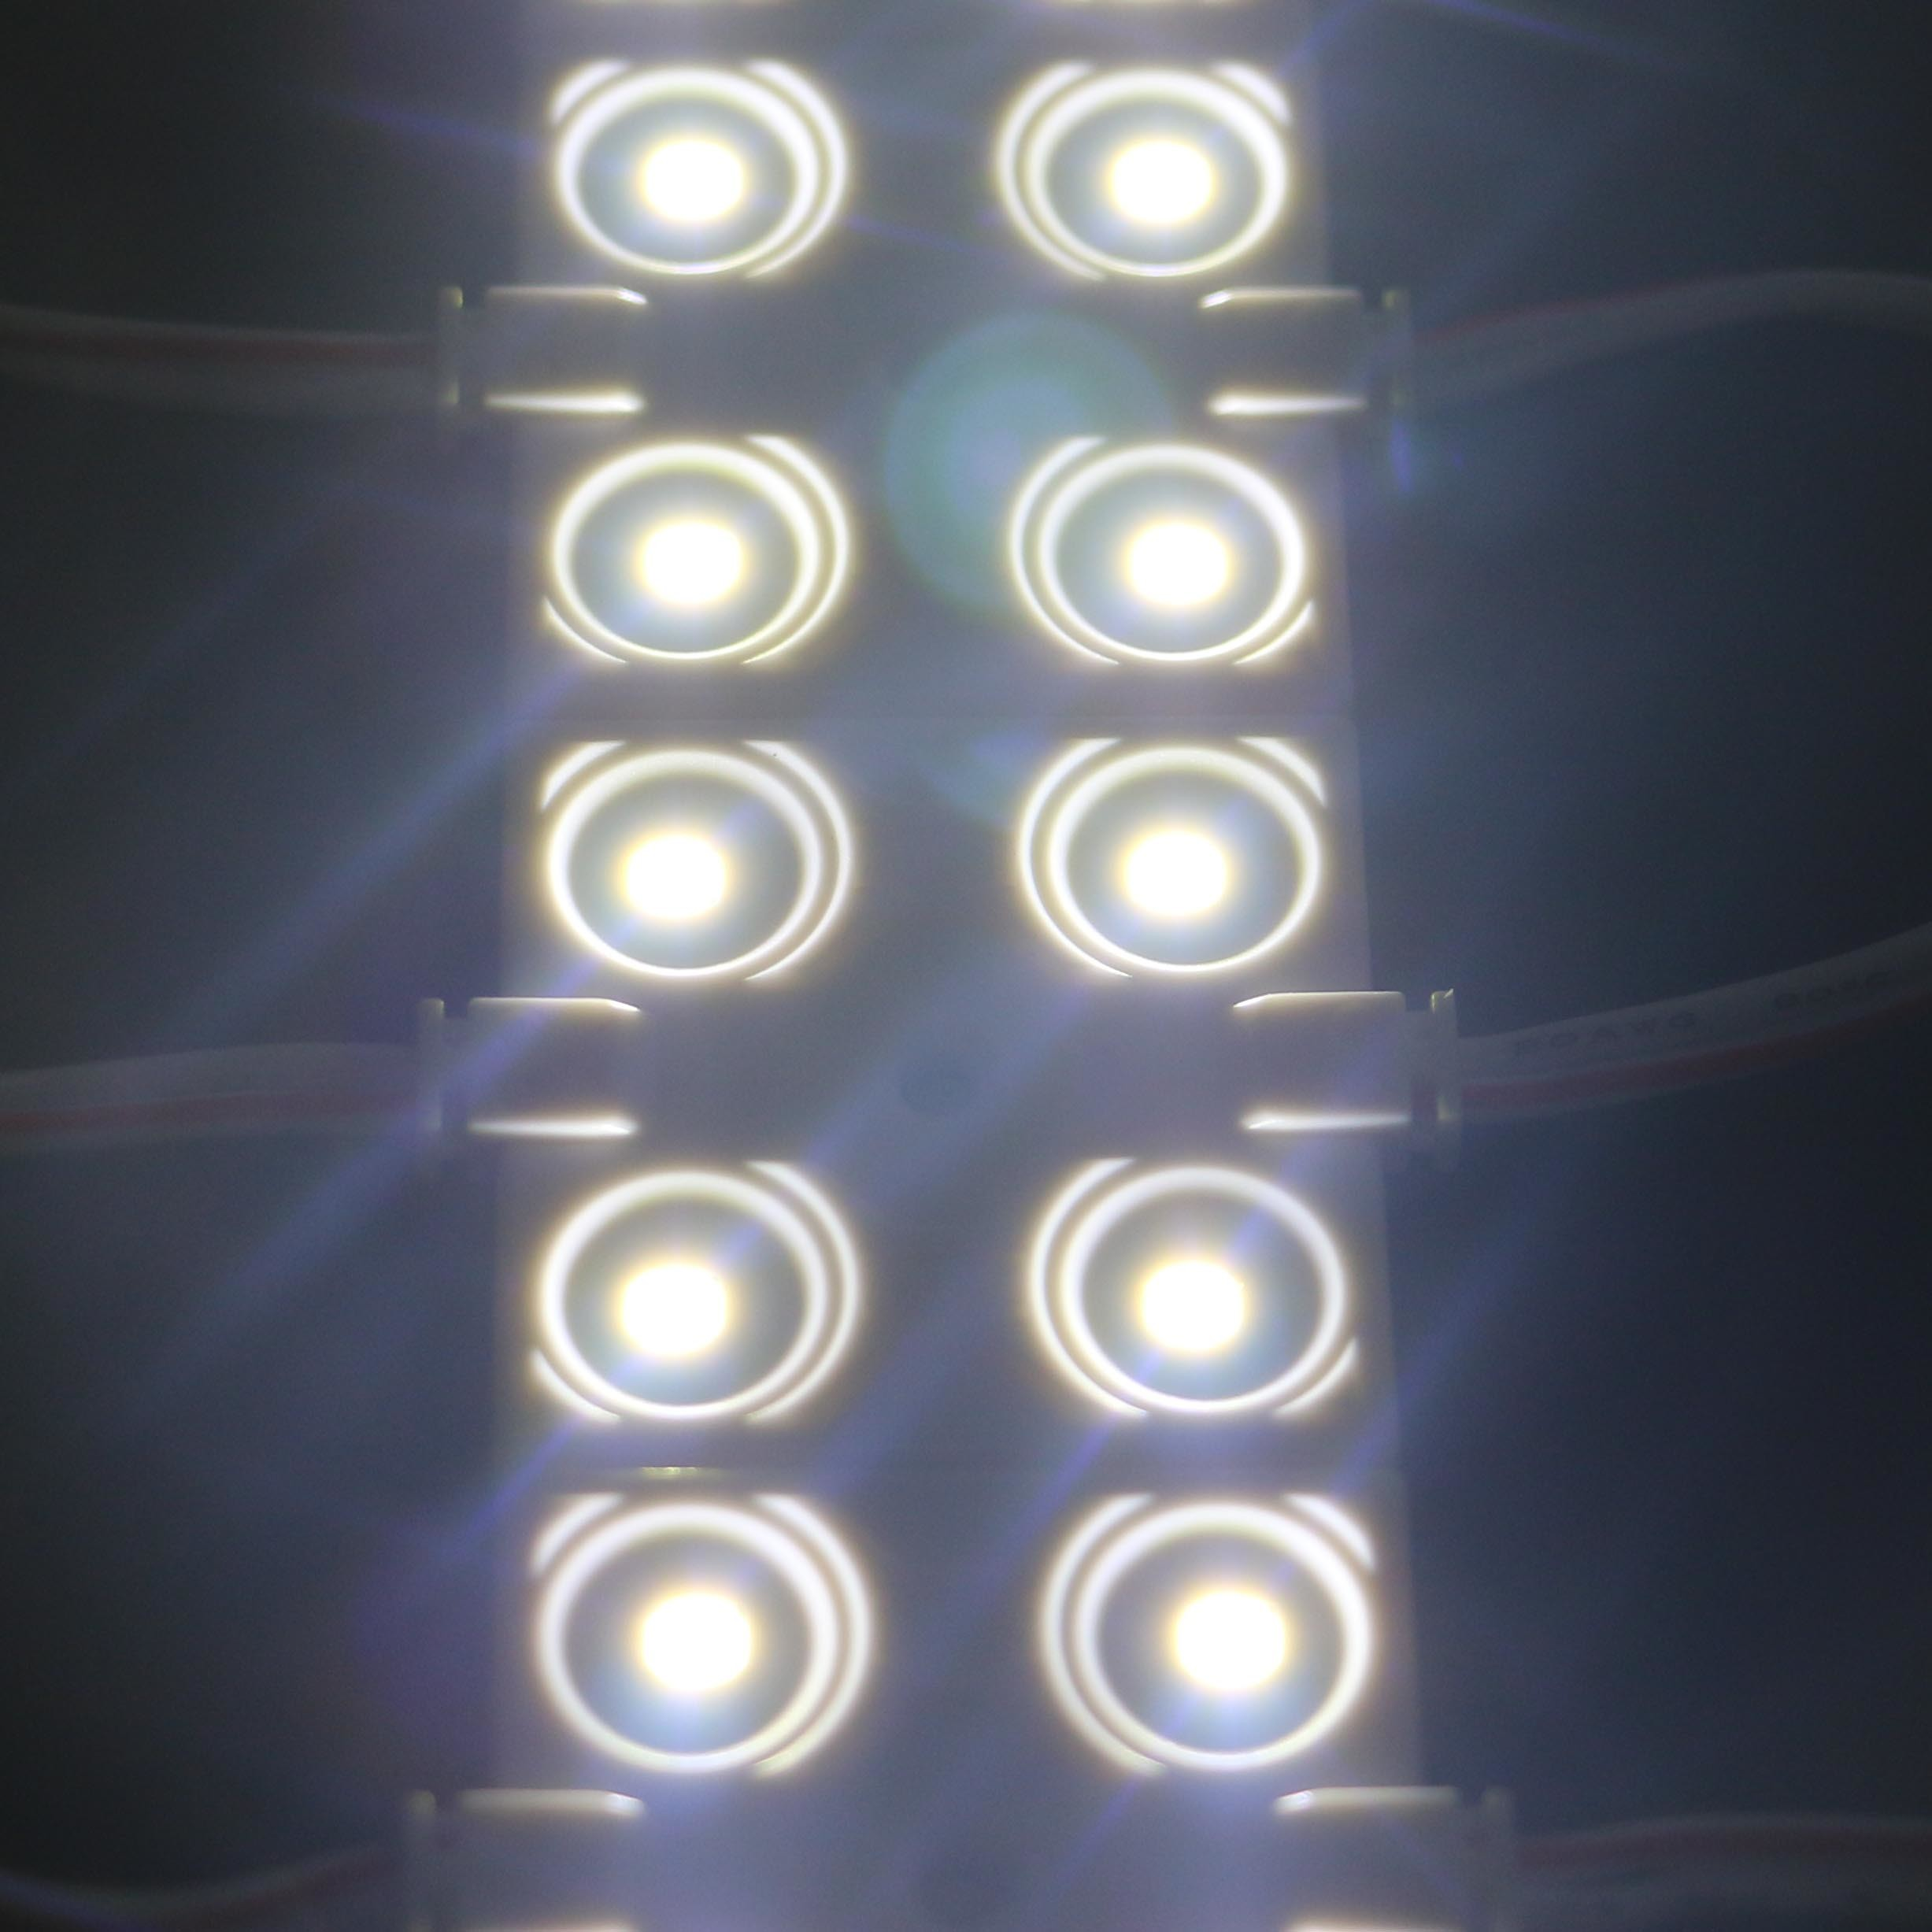 LED Lit Sign From China Supplier with 0.72W LED Moduels